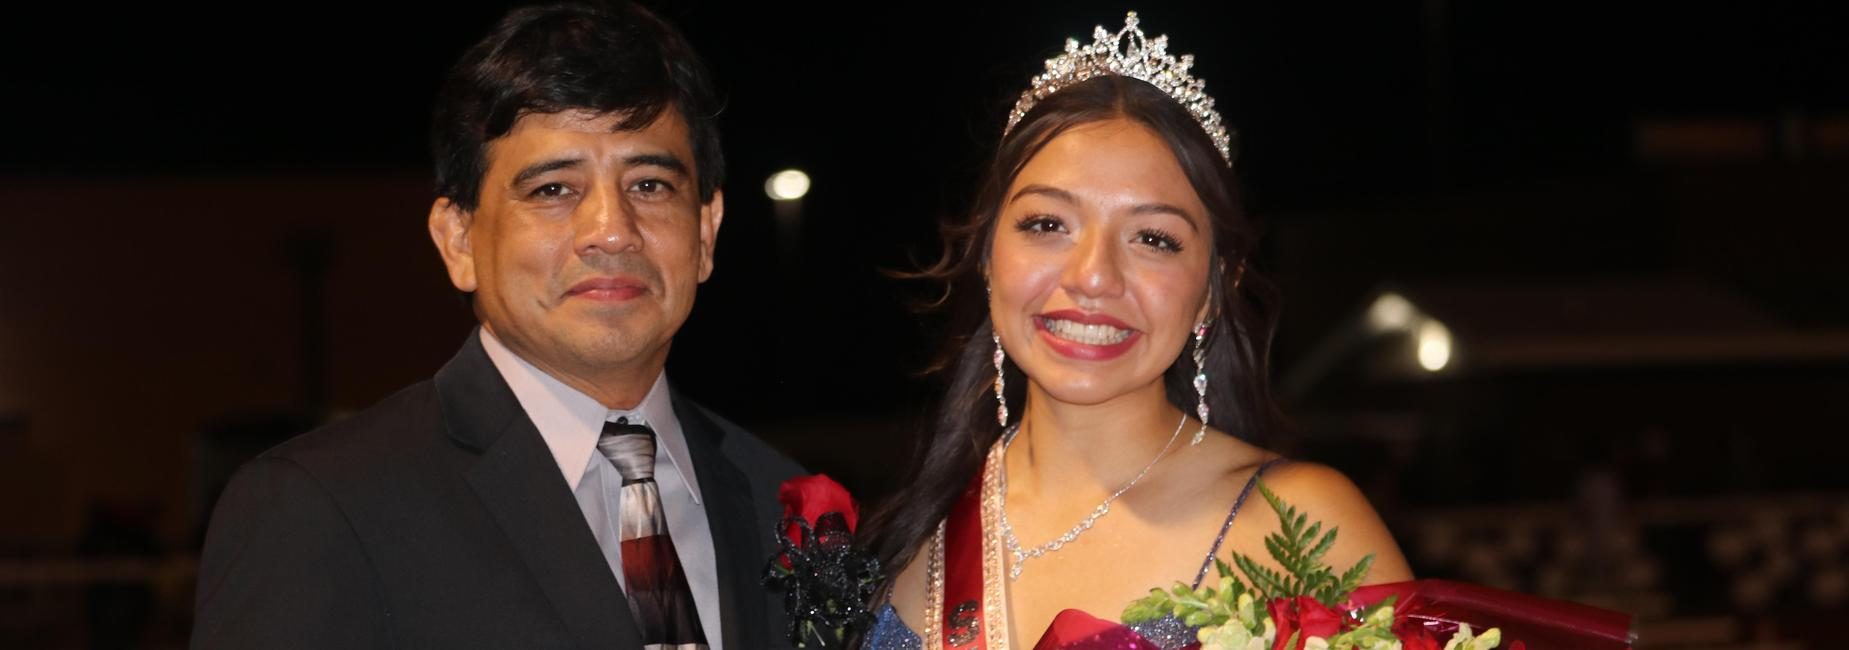 Homecoming queen smiles next to her dad